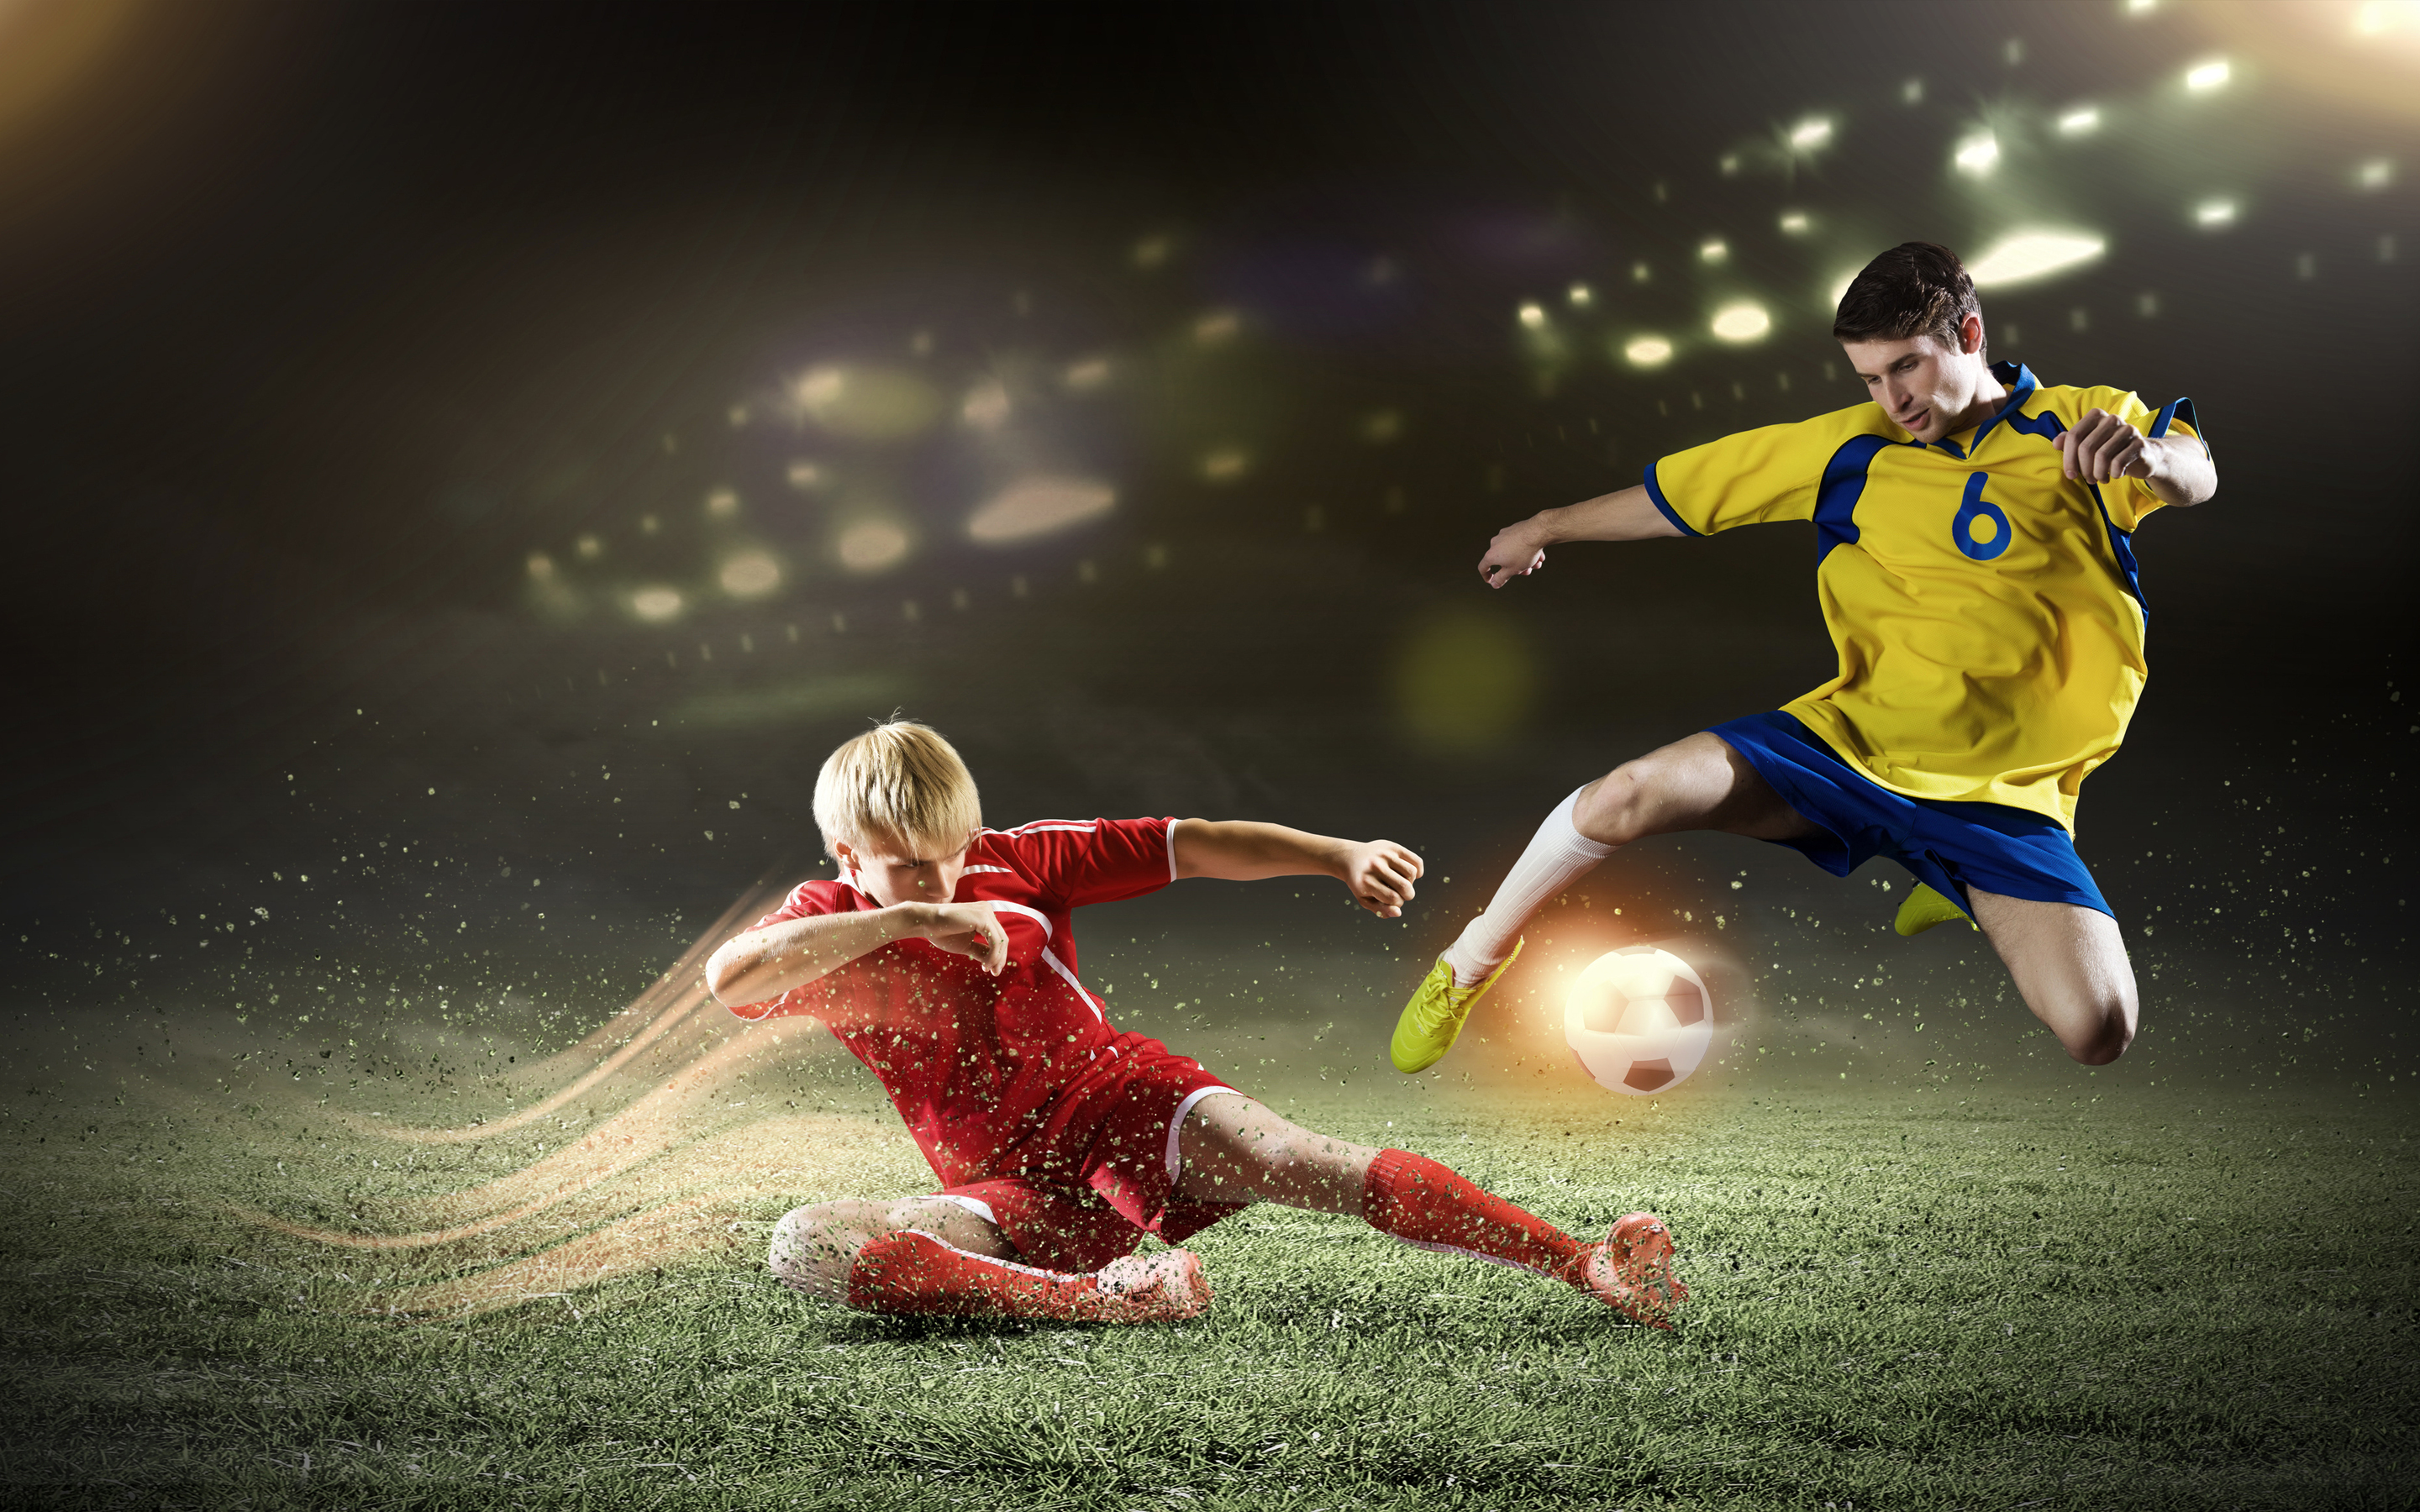 2880x1800 Soccer Players Football 4k Macbook Pro Retina Hd 4k Wallpapers Images Backgrounds Photos And Pictures